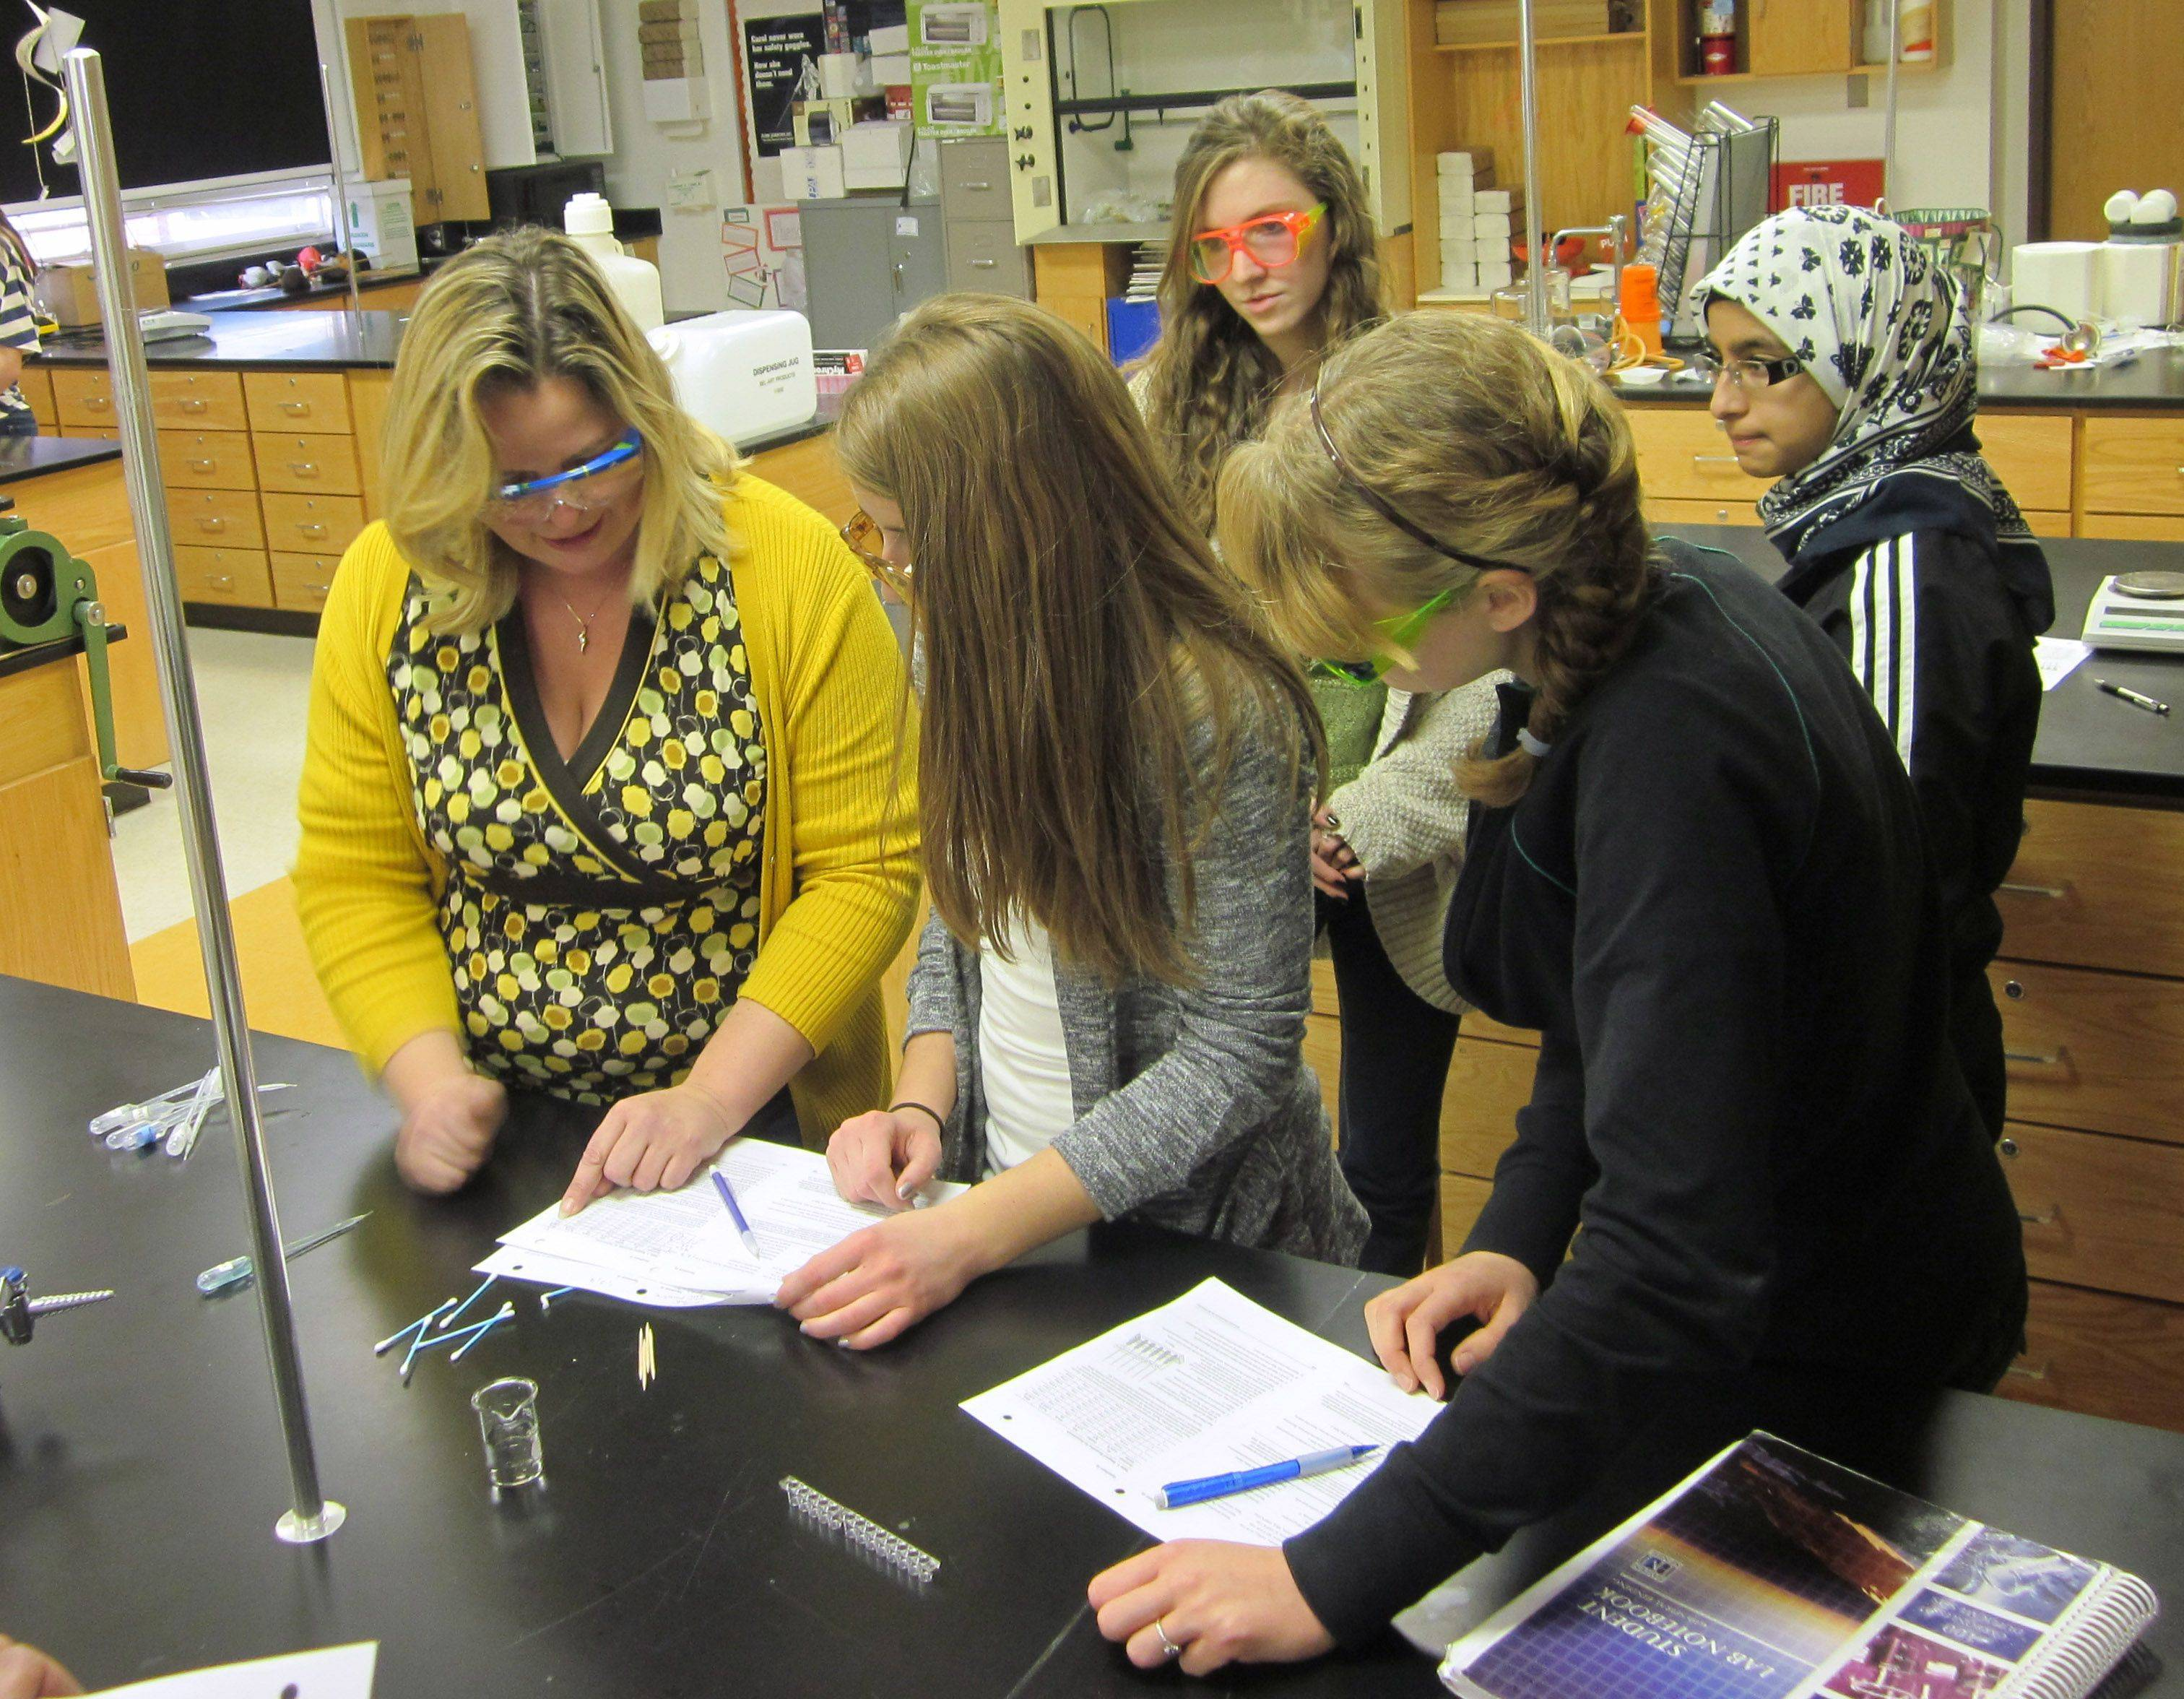 Libertyville High School chemistry teacher Sherri Rukes, left, works with students Kathleen Morris, Jessica White, Stephanie Hanagan and Aasimah Tanveer on Thursday. Rukes will receive grants to pursue three innovative programs.